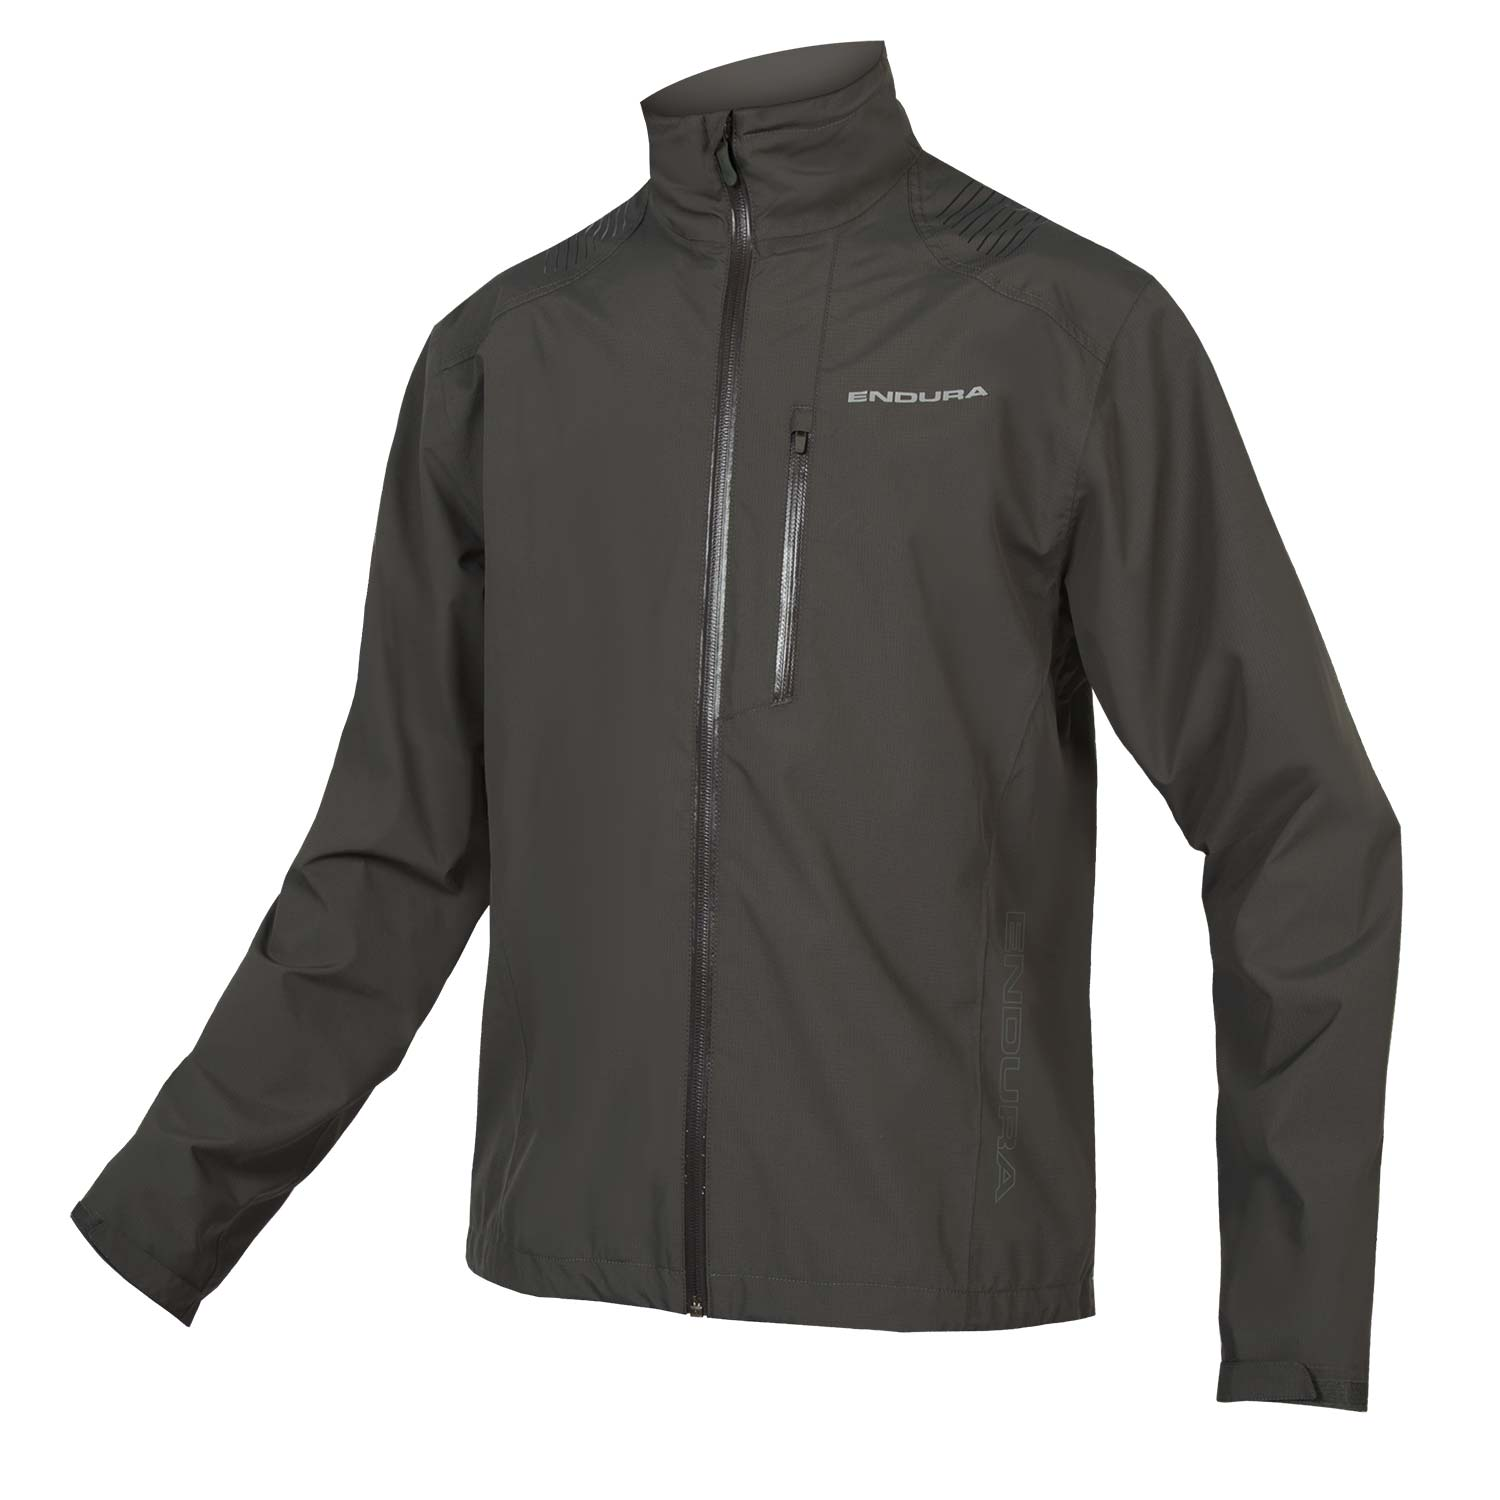 Endura Humvee waterproof jacket khaki